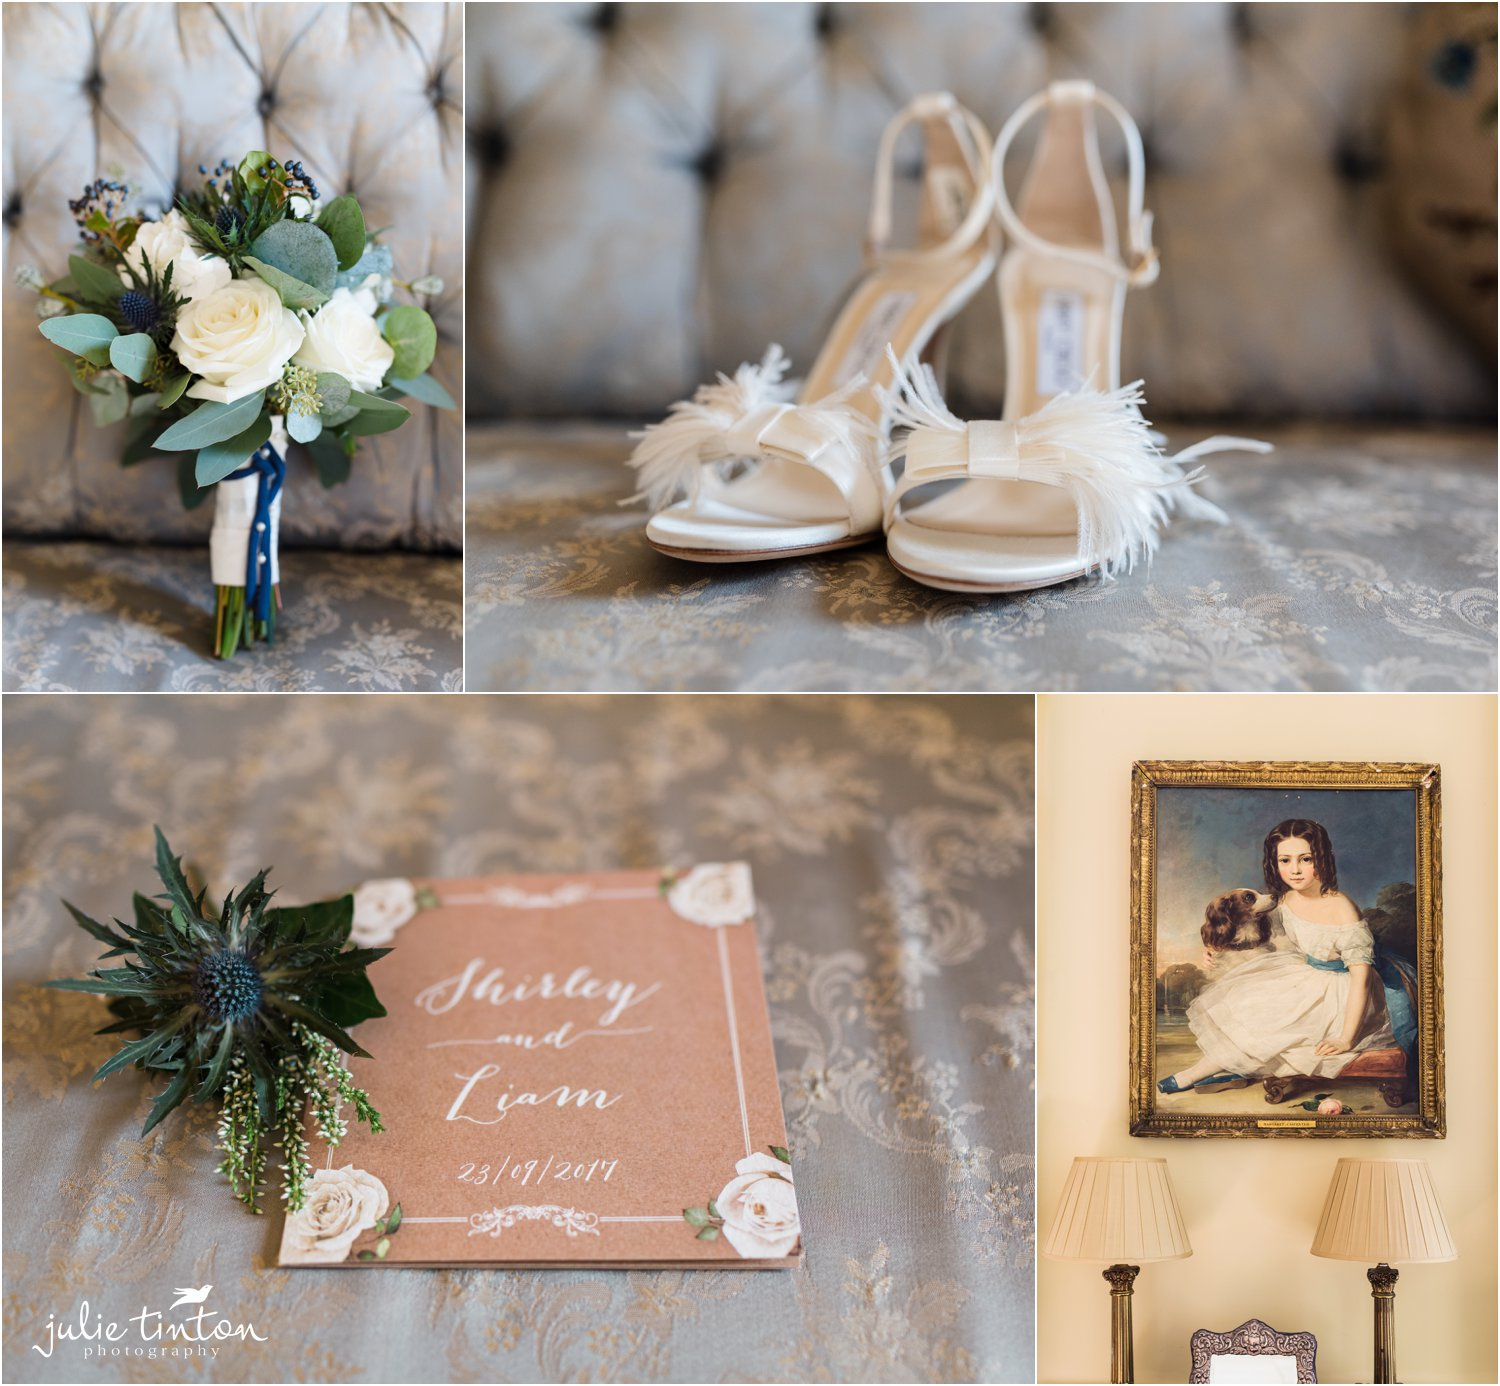 Flowers and Jimmy Choo shoes for a bride